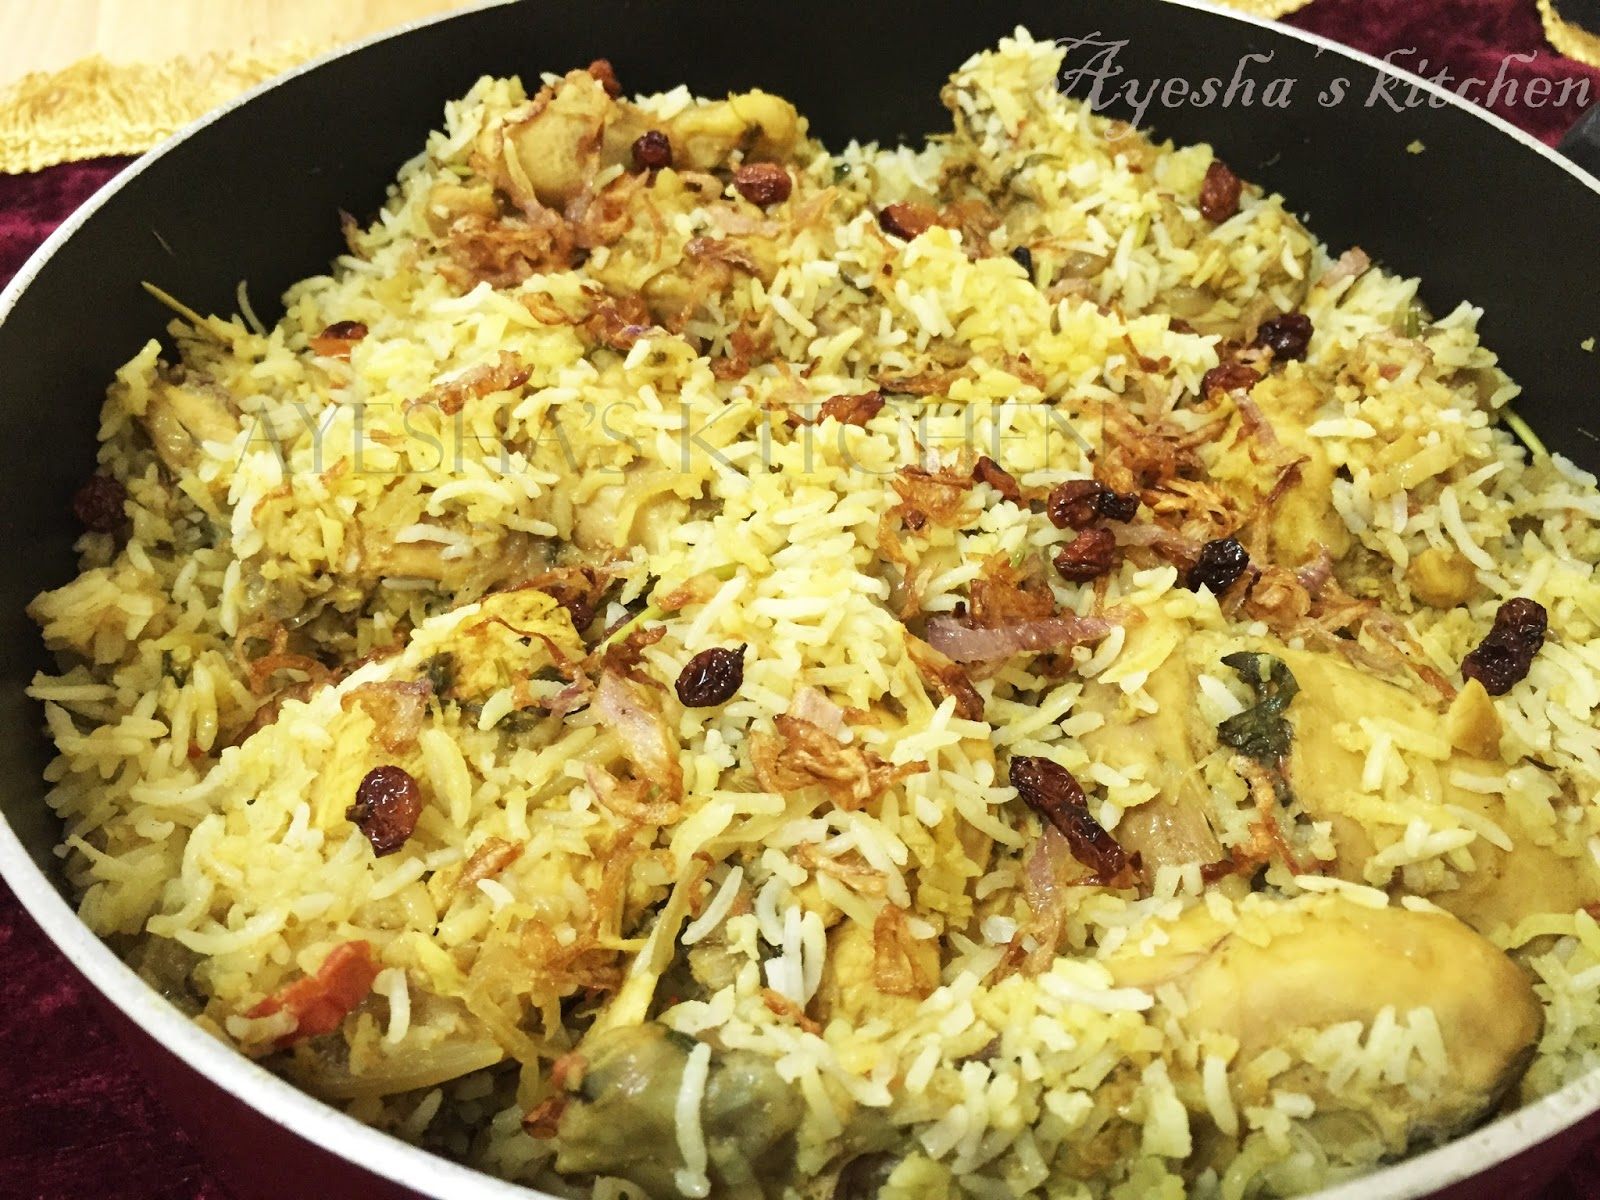 Make malabar dum biryani and know its recipes chicken biryani recipe malar biryani or kerala biryani perfect holiday cooking recipe rice dishes easy and forumfinder Image collections